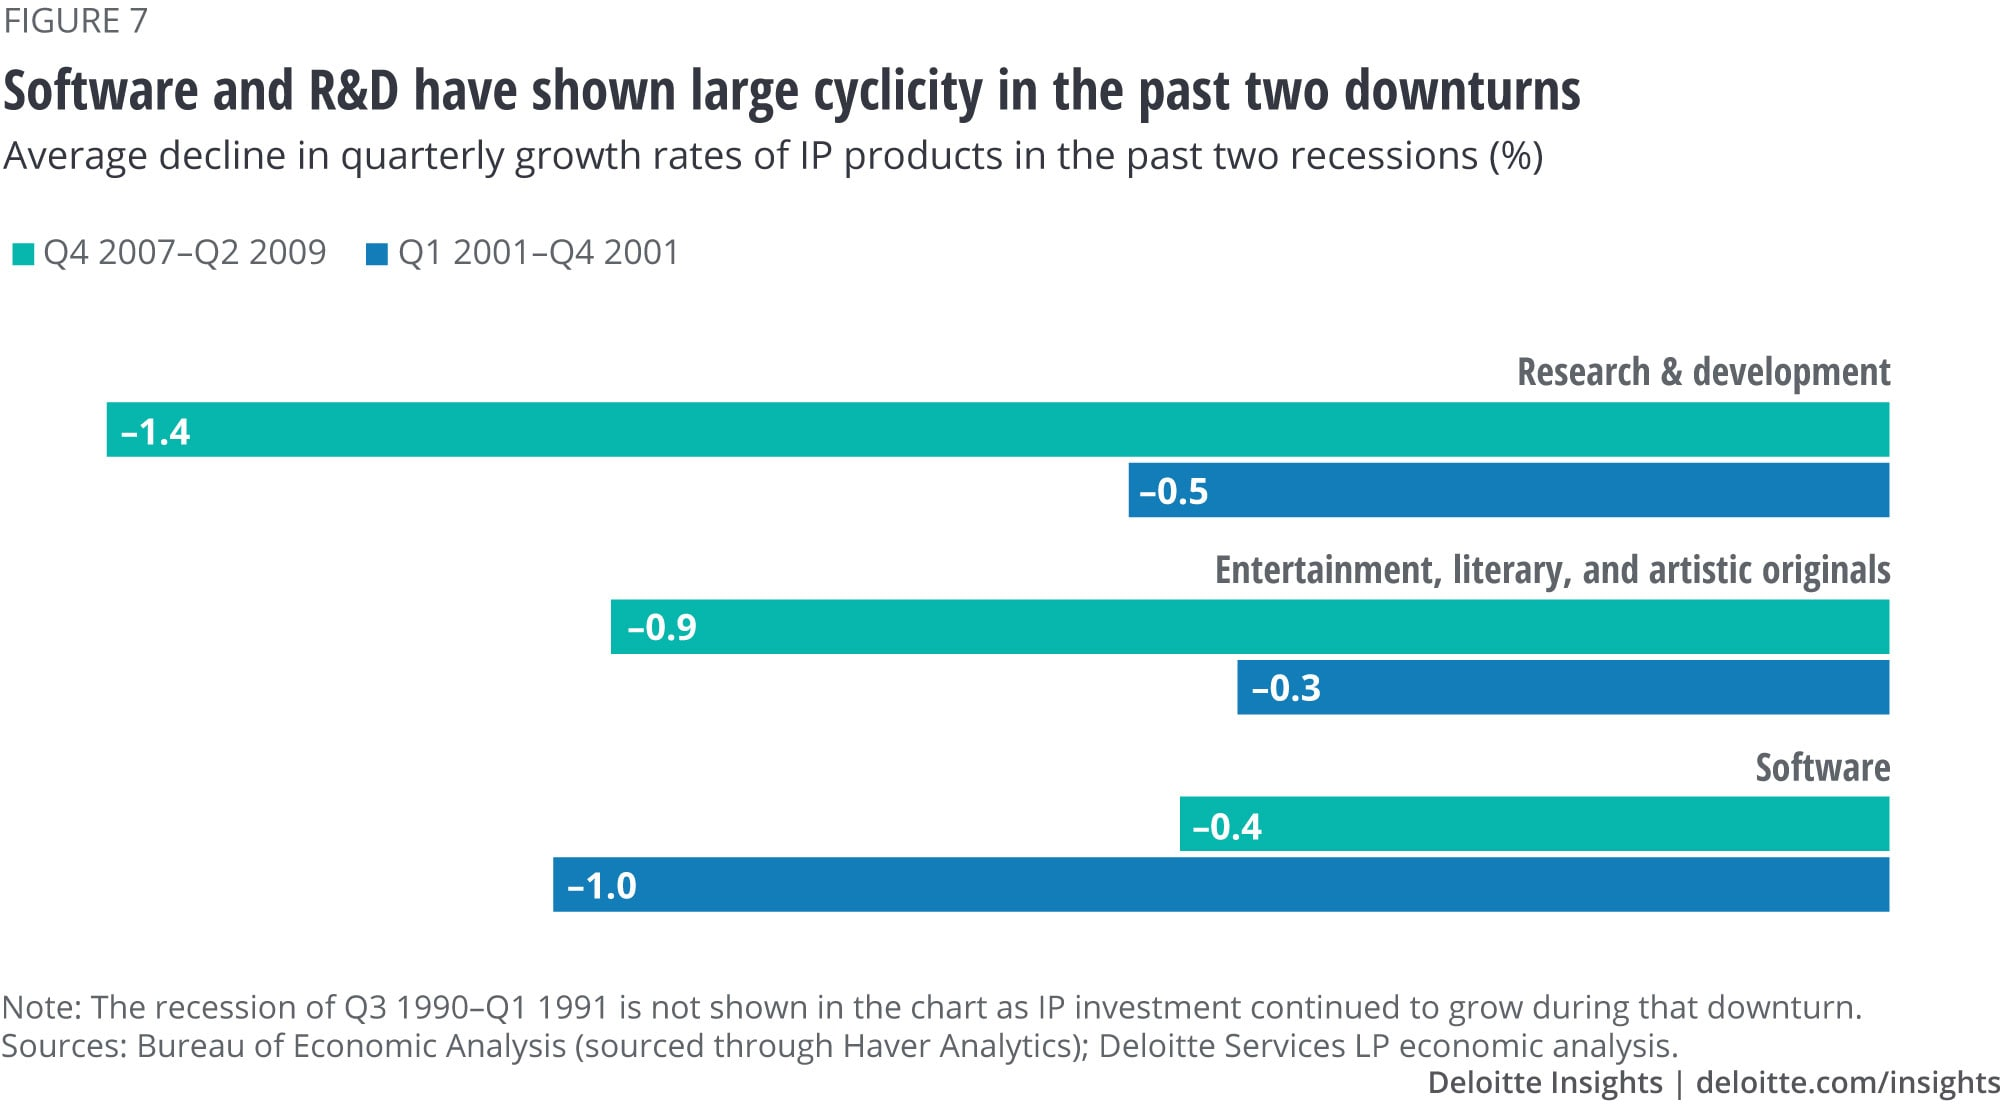 Software and research and development have shown large cyclicity in the past two downturns